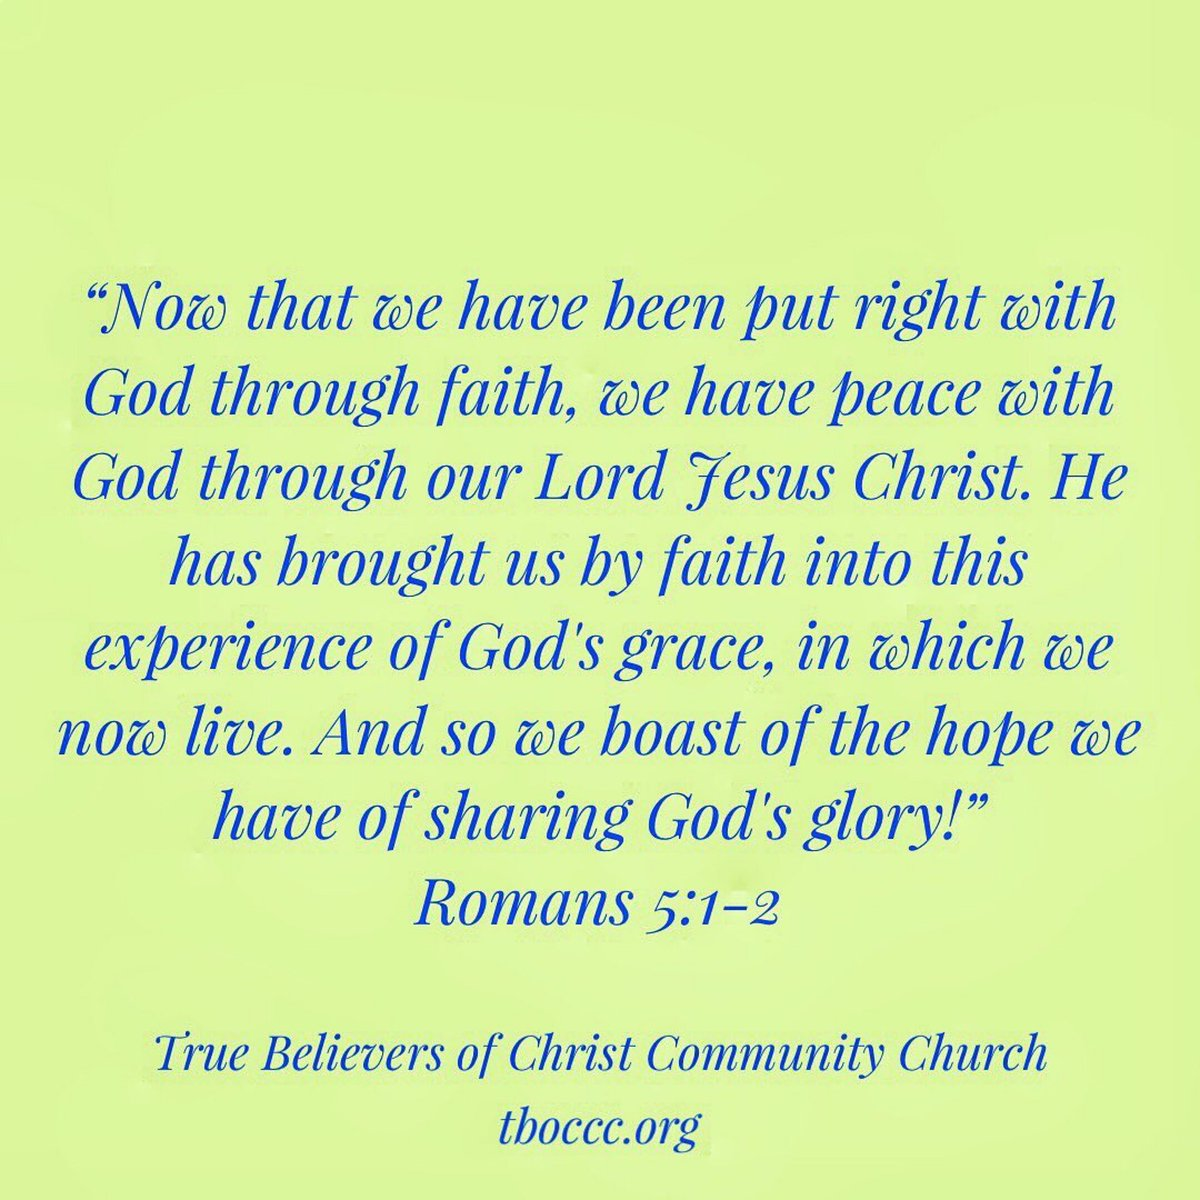 #tboc #tboccc #truebelieversofchristcommunitychurch  #romanroad #bible #verse #bibleverse #scripture #god #grace #faith #lord #jesus #christ #lordjesuschrist #glory #romans https://t.co/84H440s8PN